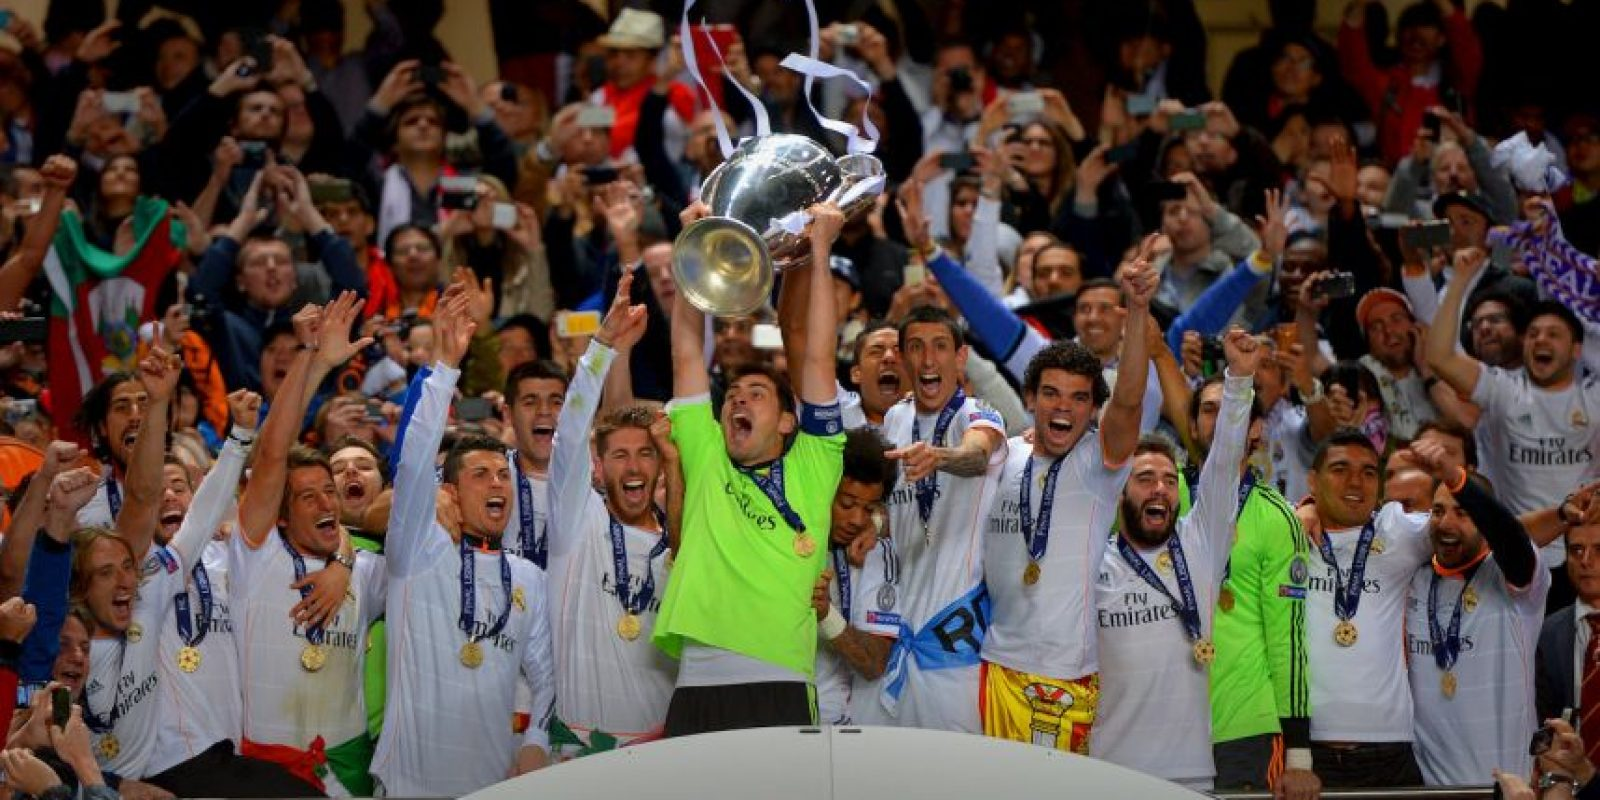 Tienen 10 Champions League: 1956, 1957, 1958, 1959, 1960, 1966, 1998, 2000, 2002, 2014. Foto: Getty Images